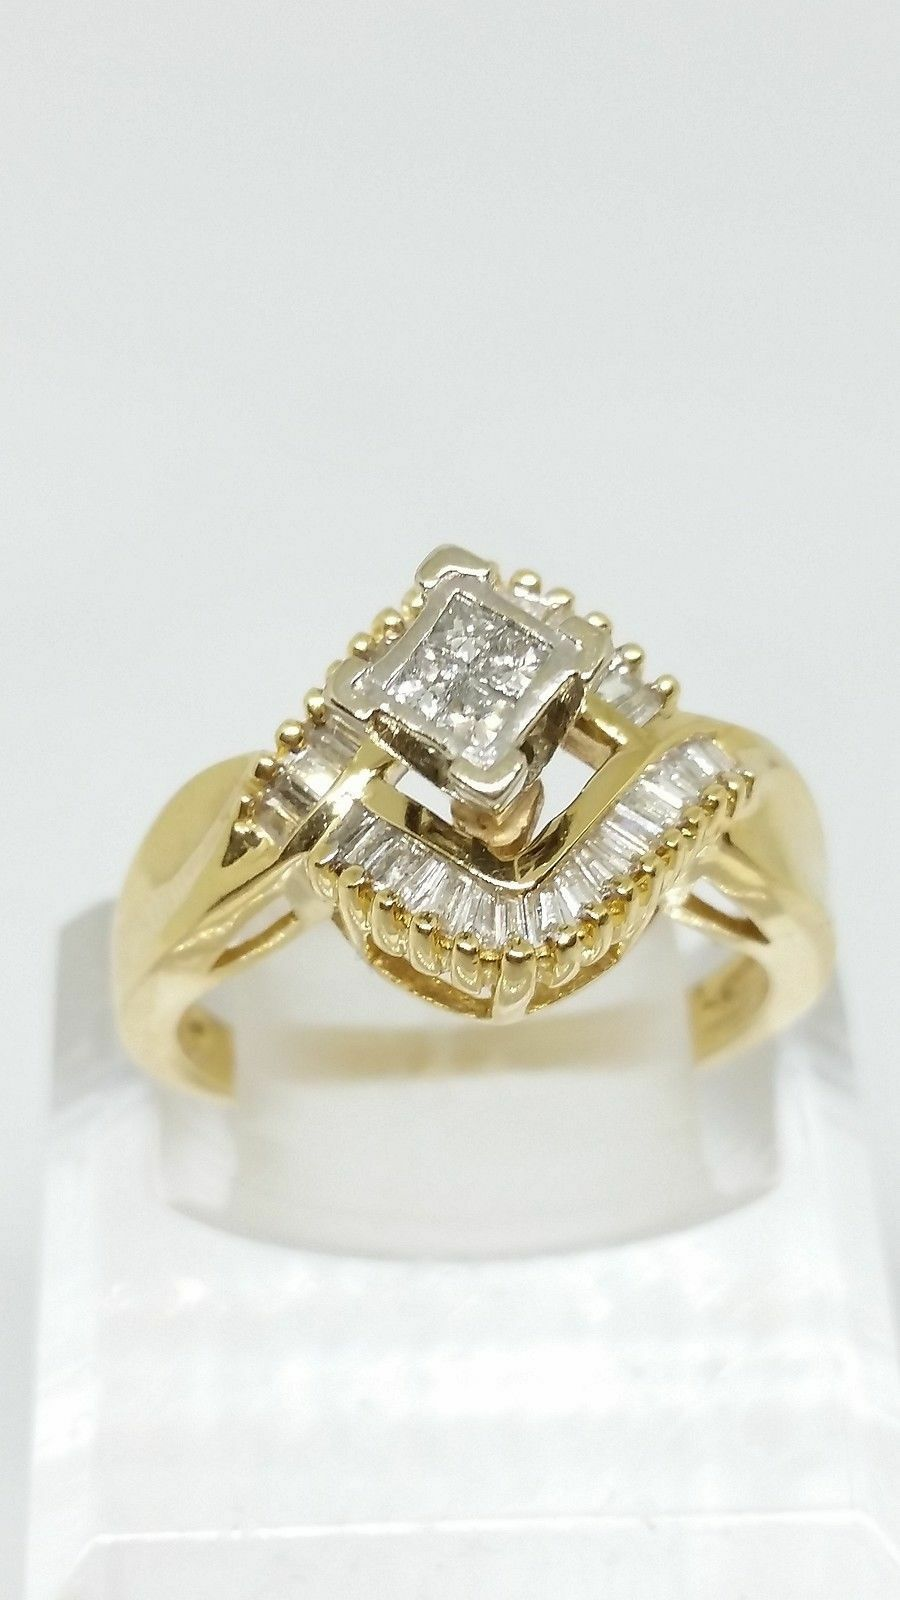 14k Yellow gold Vintage Solitaire With Accents Diamond Engagement Ring Size 7